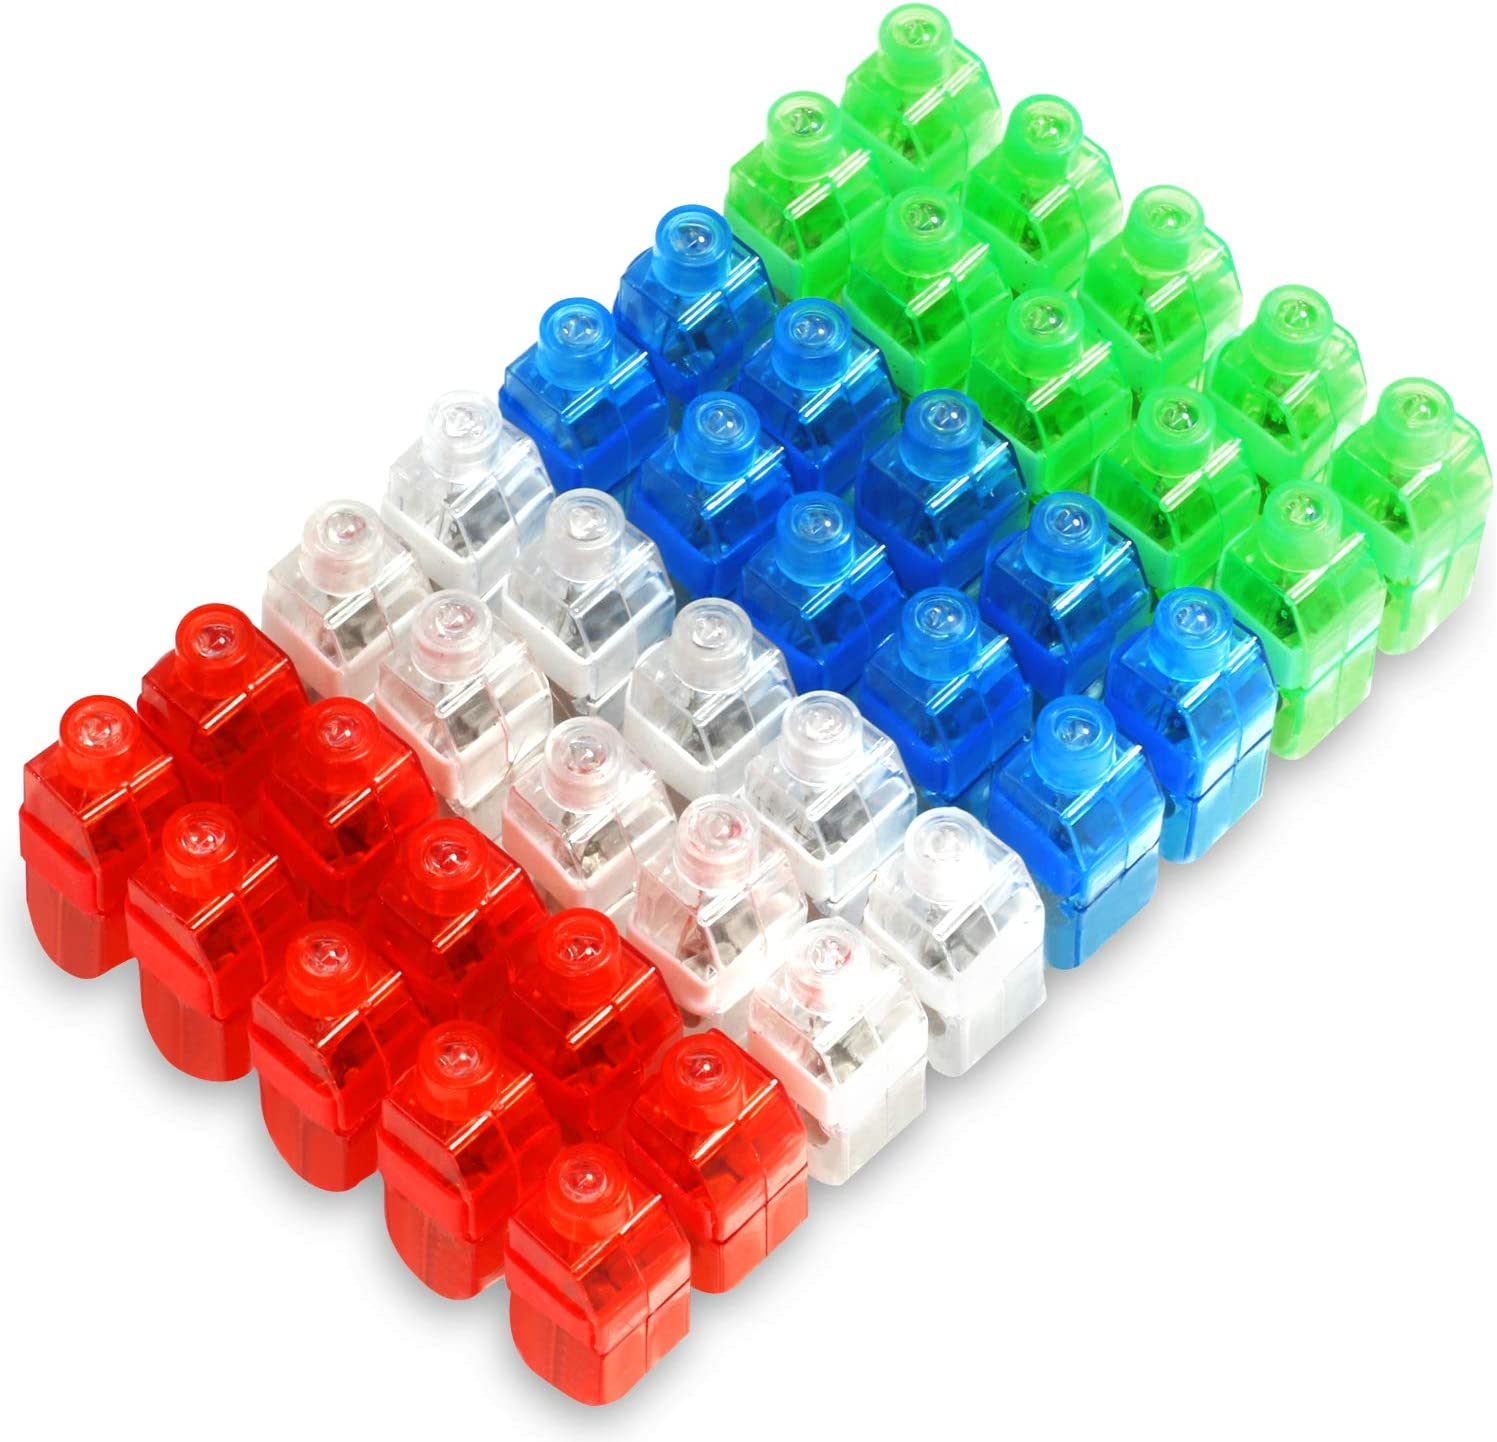 LED Finger Lights 100 Pack Finger Ring Glow Sticks for Kids Adults Bright Party Favors Party Supplies for Holiday Light up Toys Assorted Color